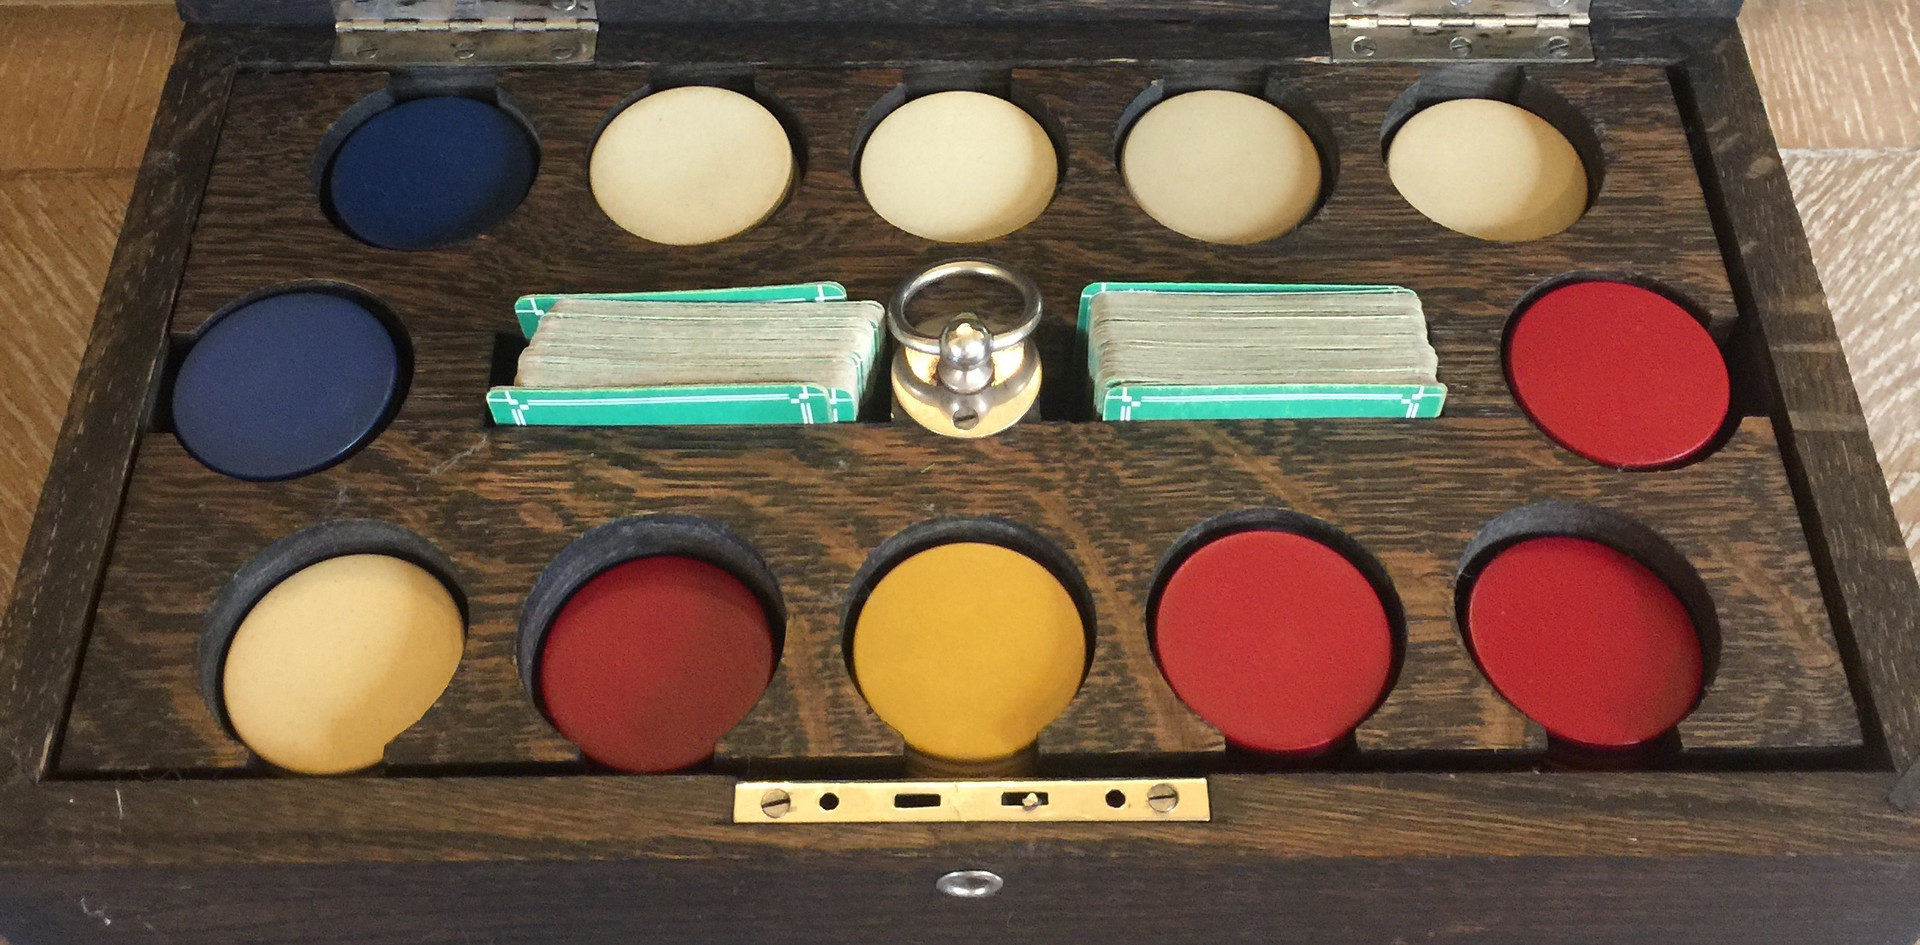 Antique 1940s Rubber Poker Chips with Carrier